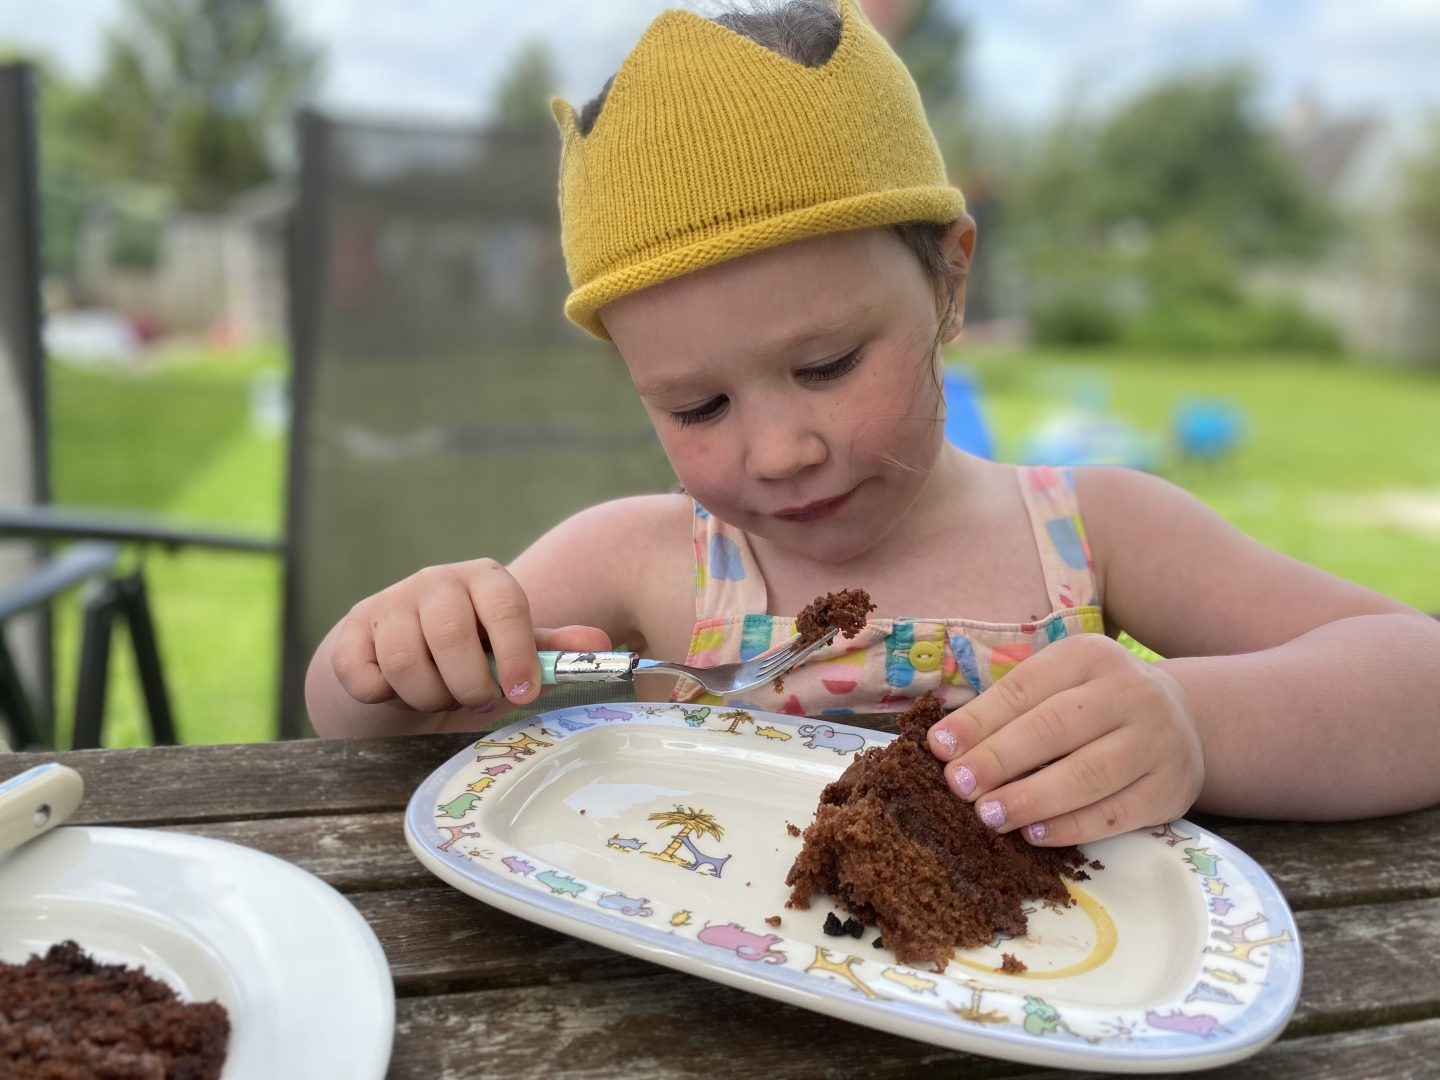 A child enjoying Birthday cake